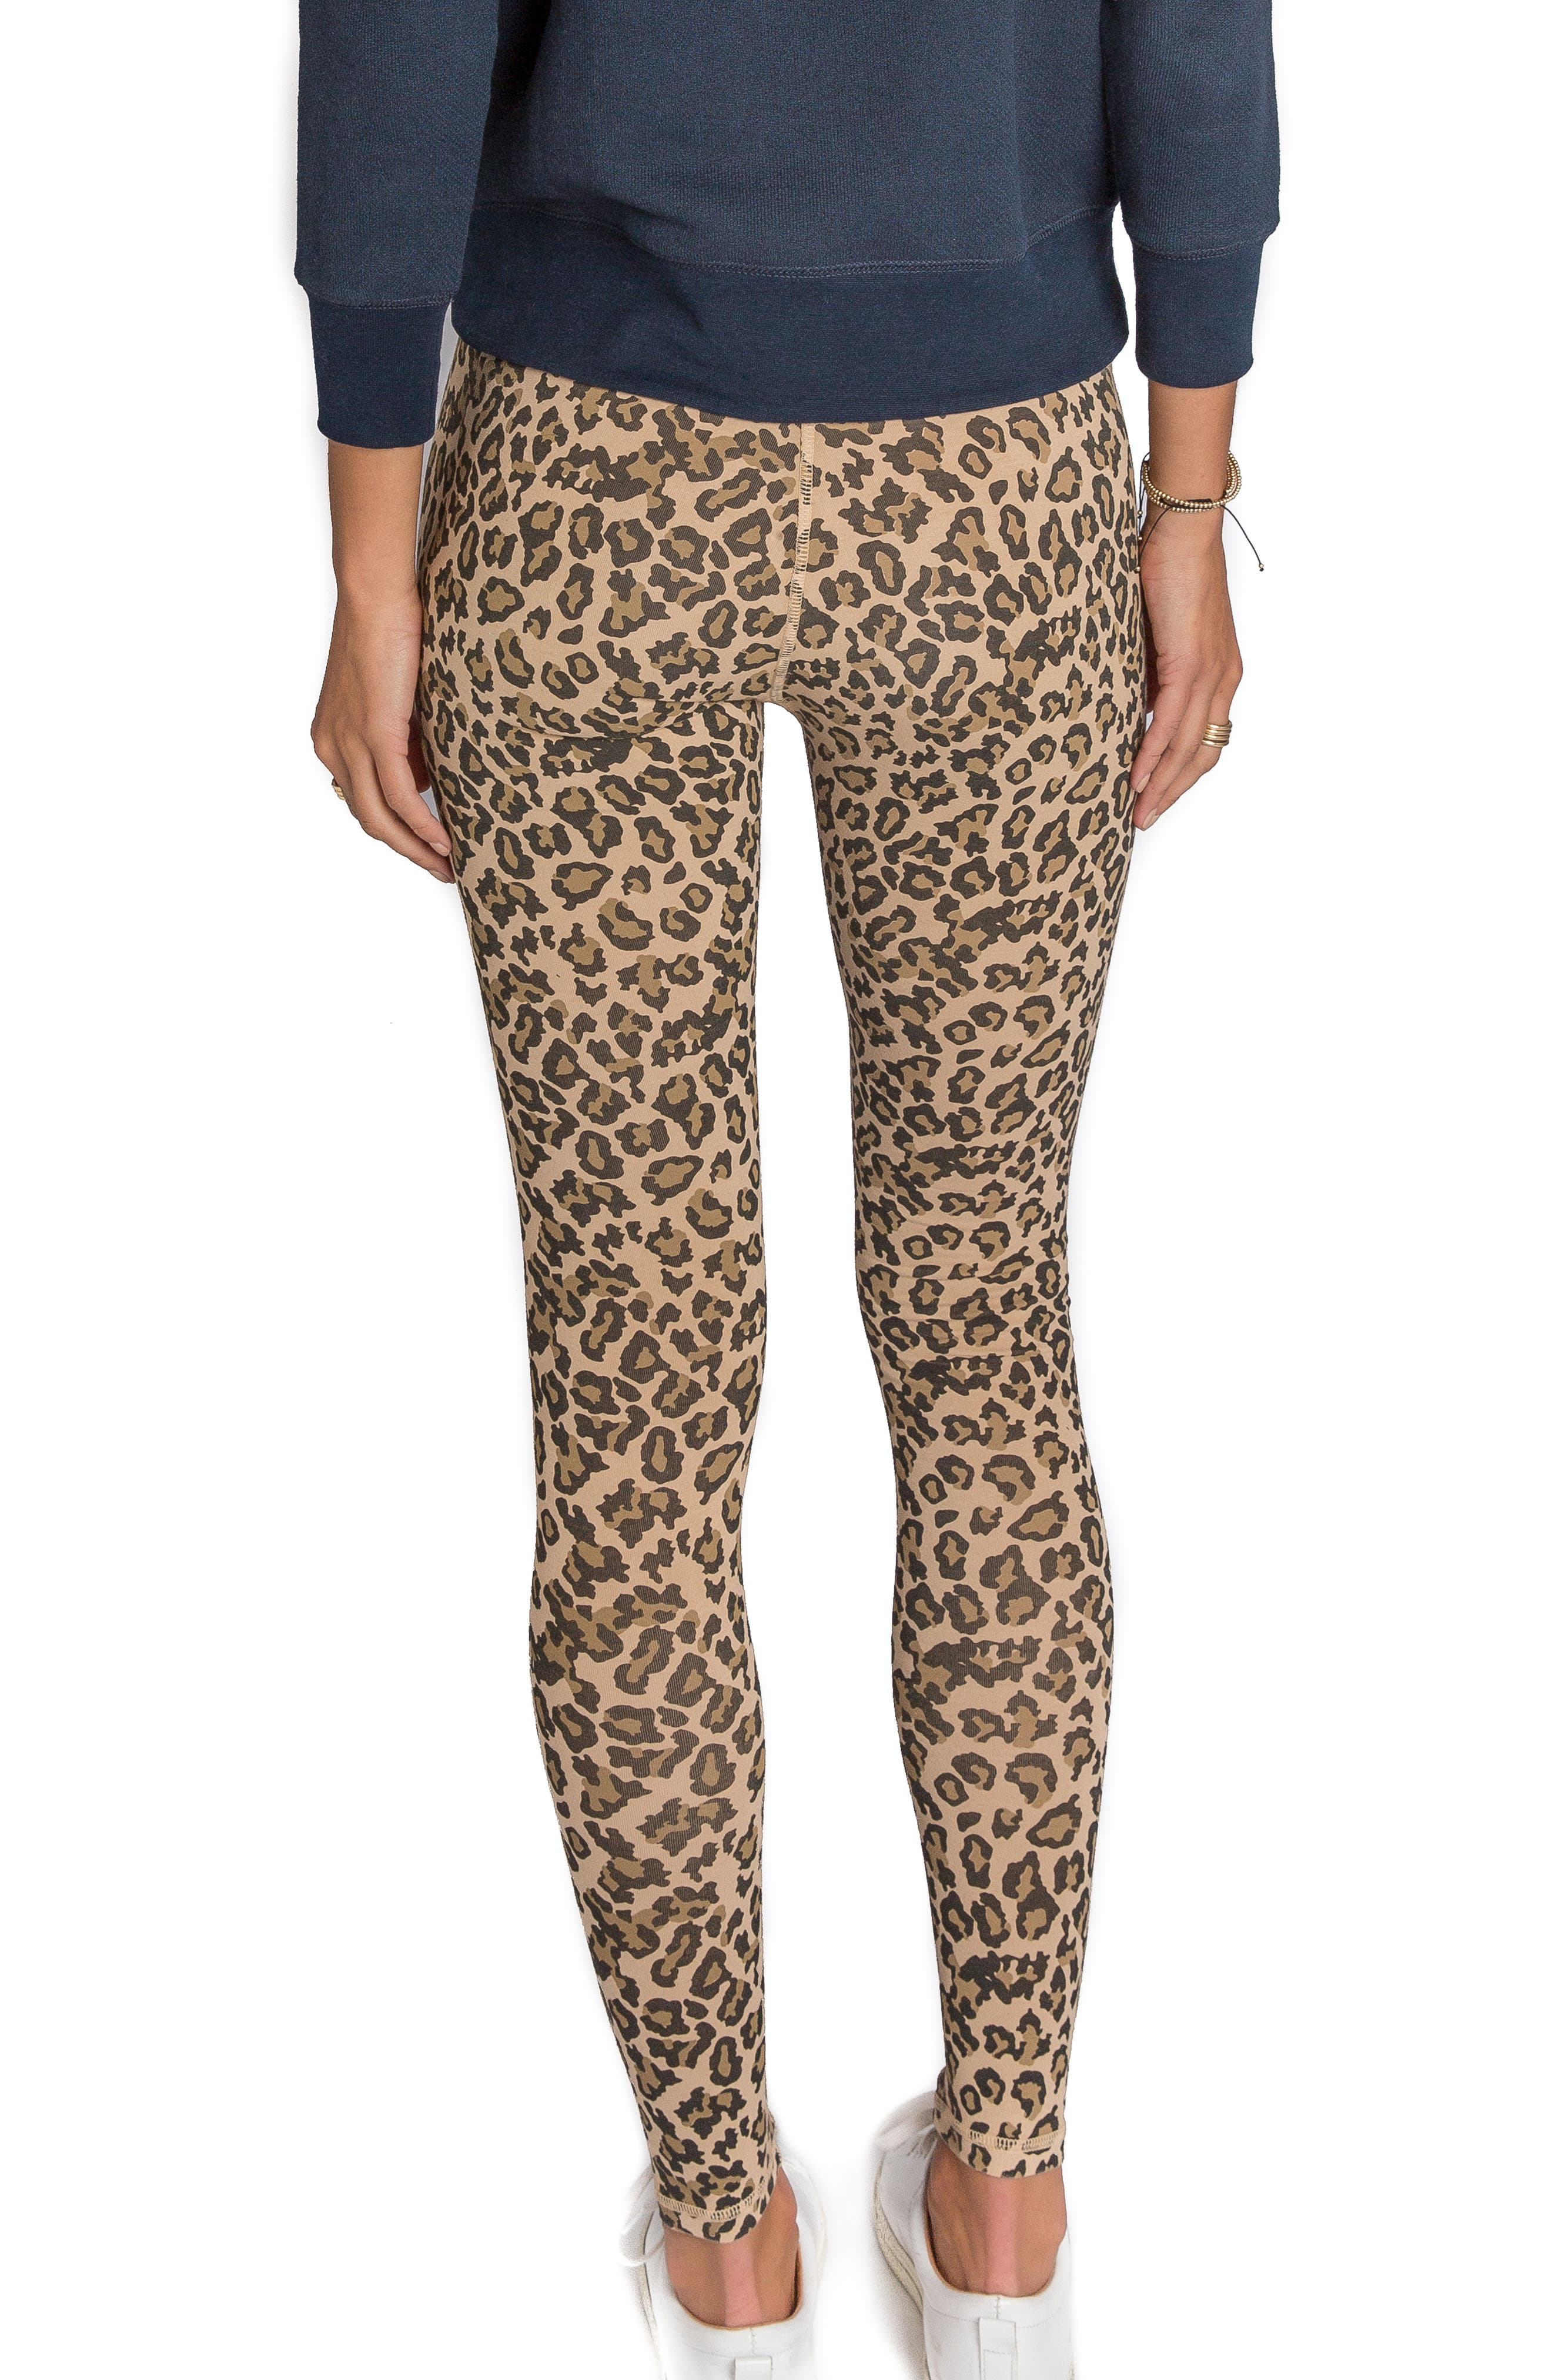 Leopard Print Leggings,                             Alternate thumbnail 2, color,                             Faded Camel